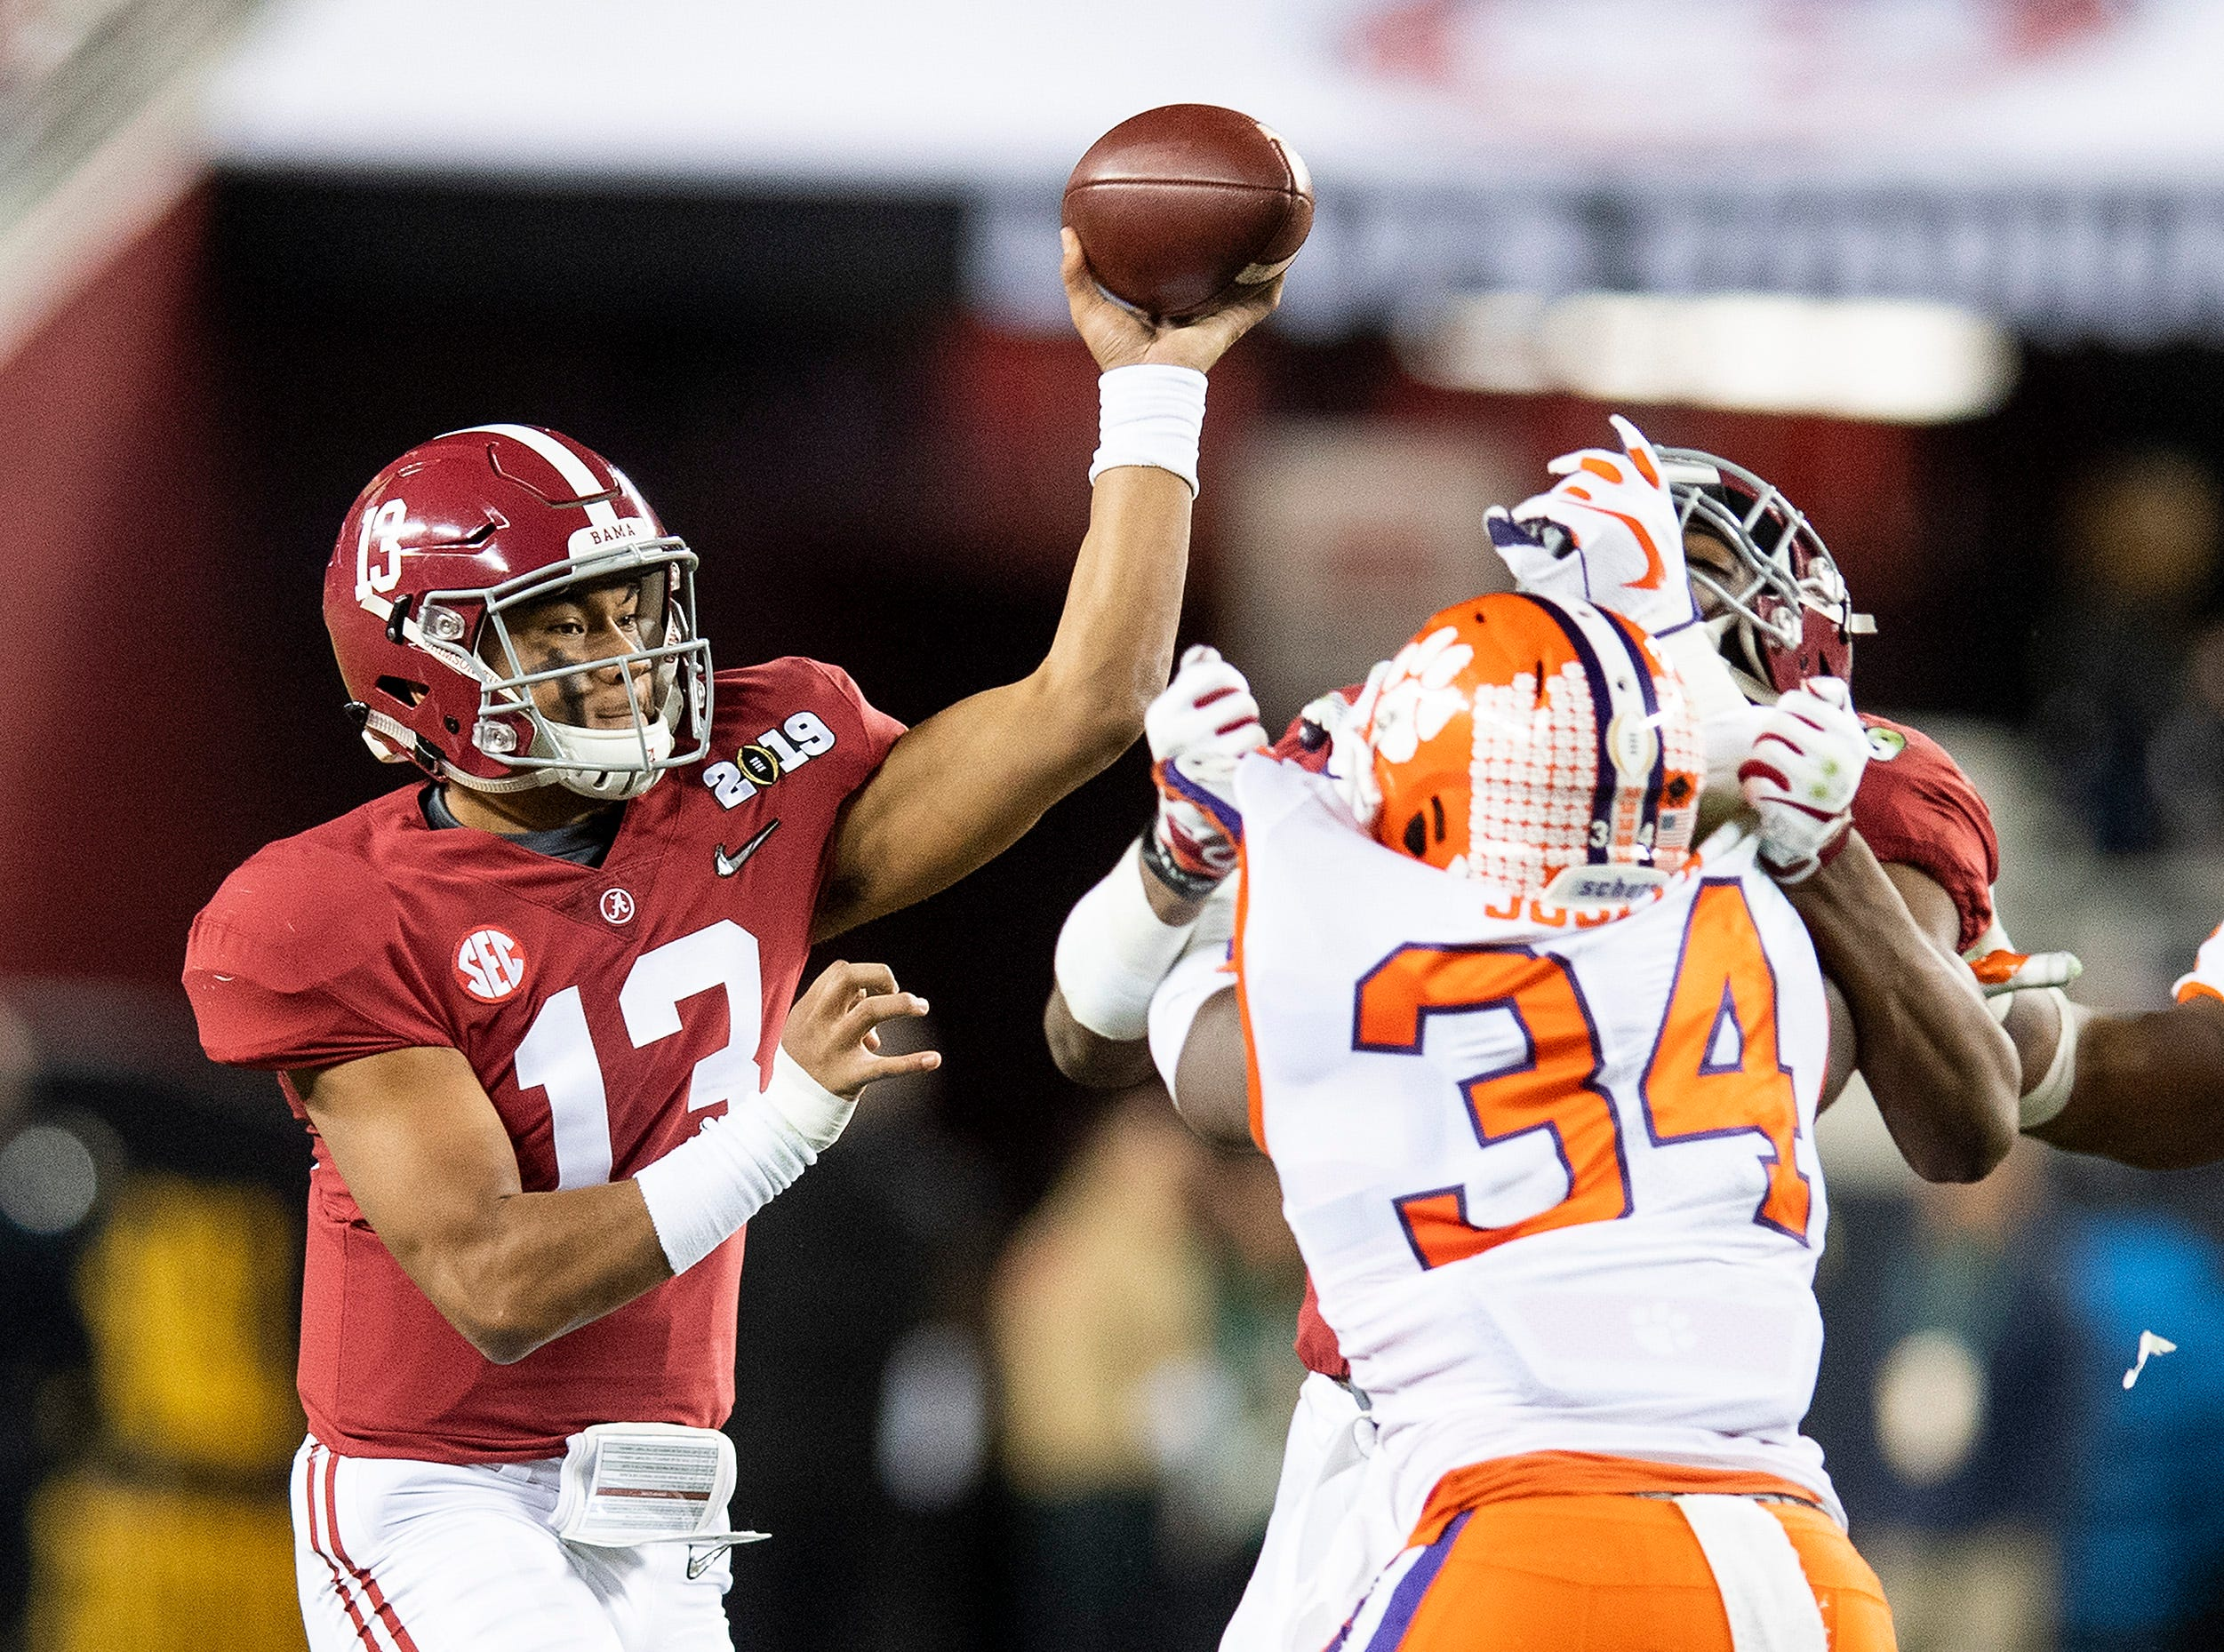 Alabama quarterback Tua Tagovailoa (13) passes against Clemson In first half action of the College Football Playoff National Championship game at Levi's Stadium in Santa Clara, Ca., on Monday January 7, 2019.